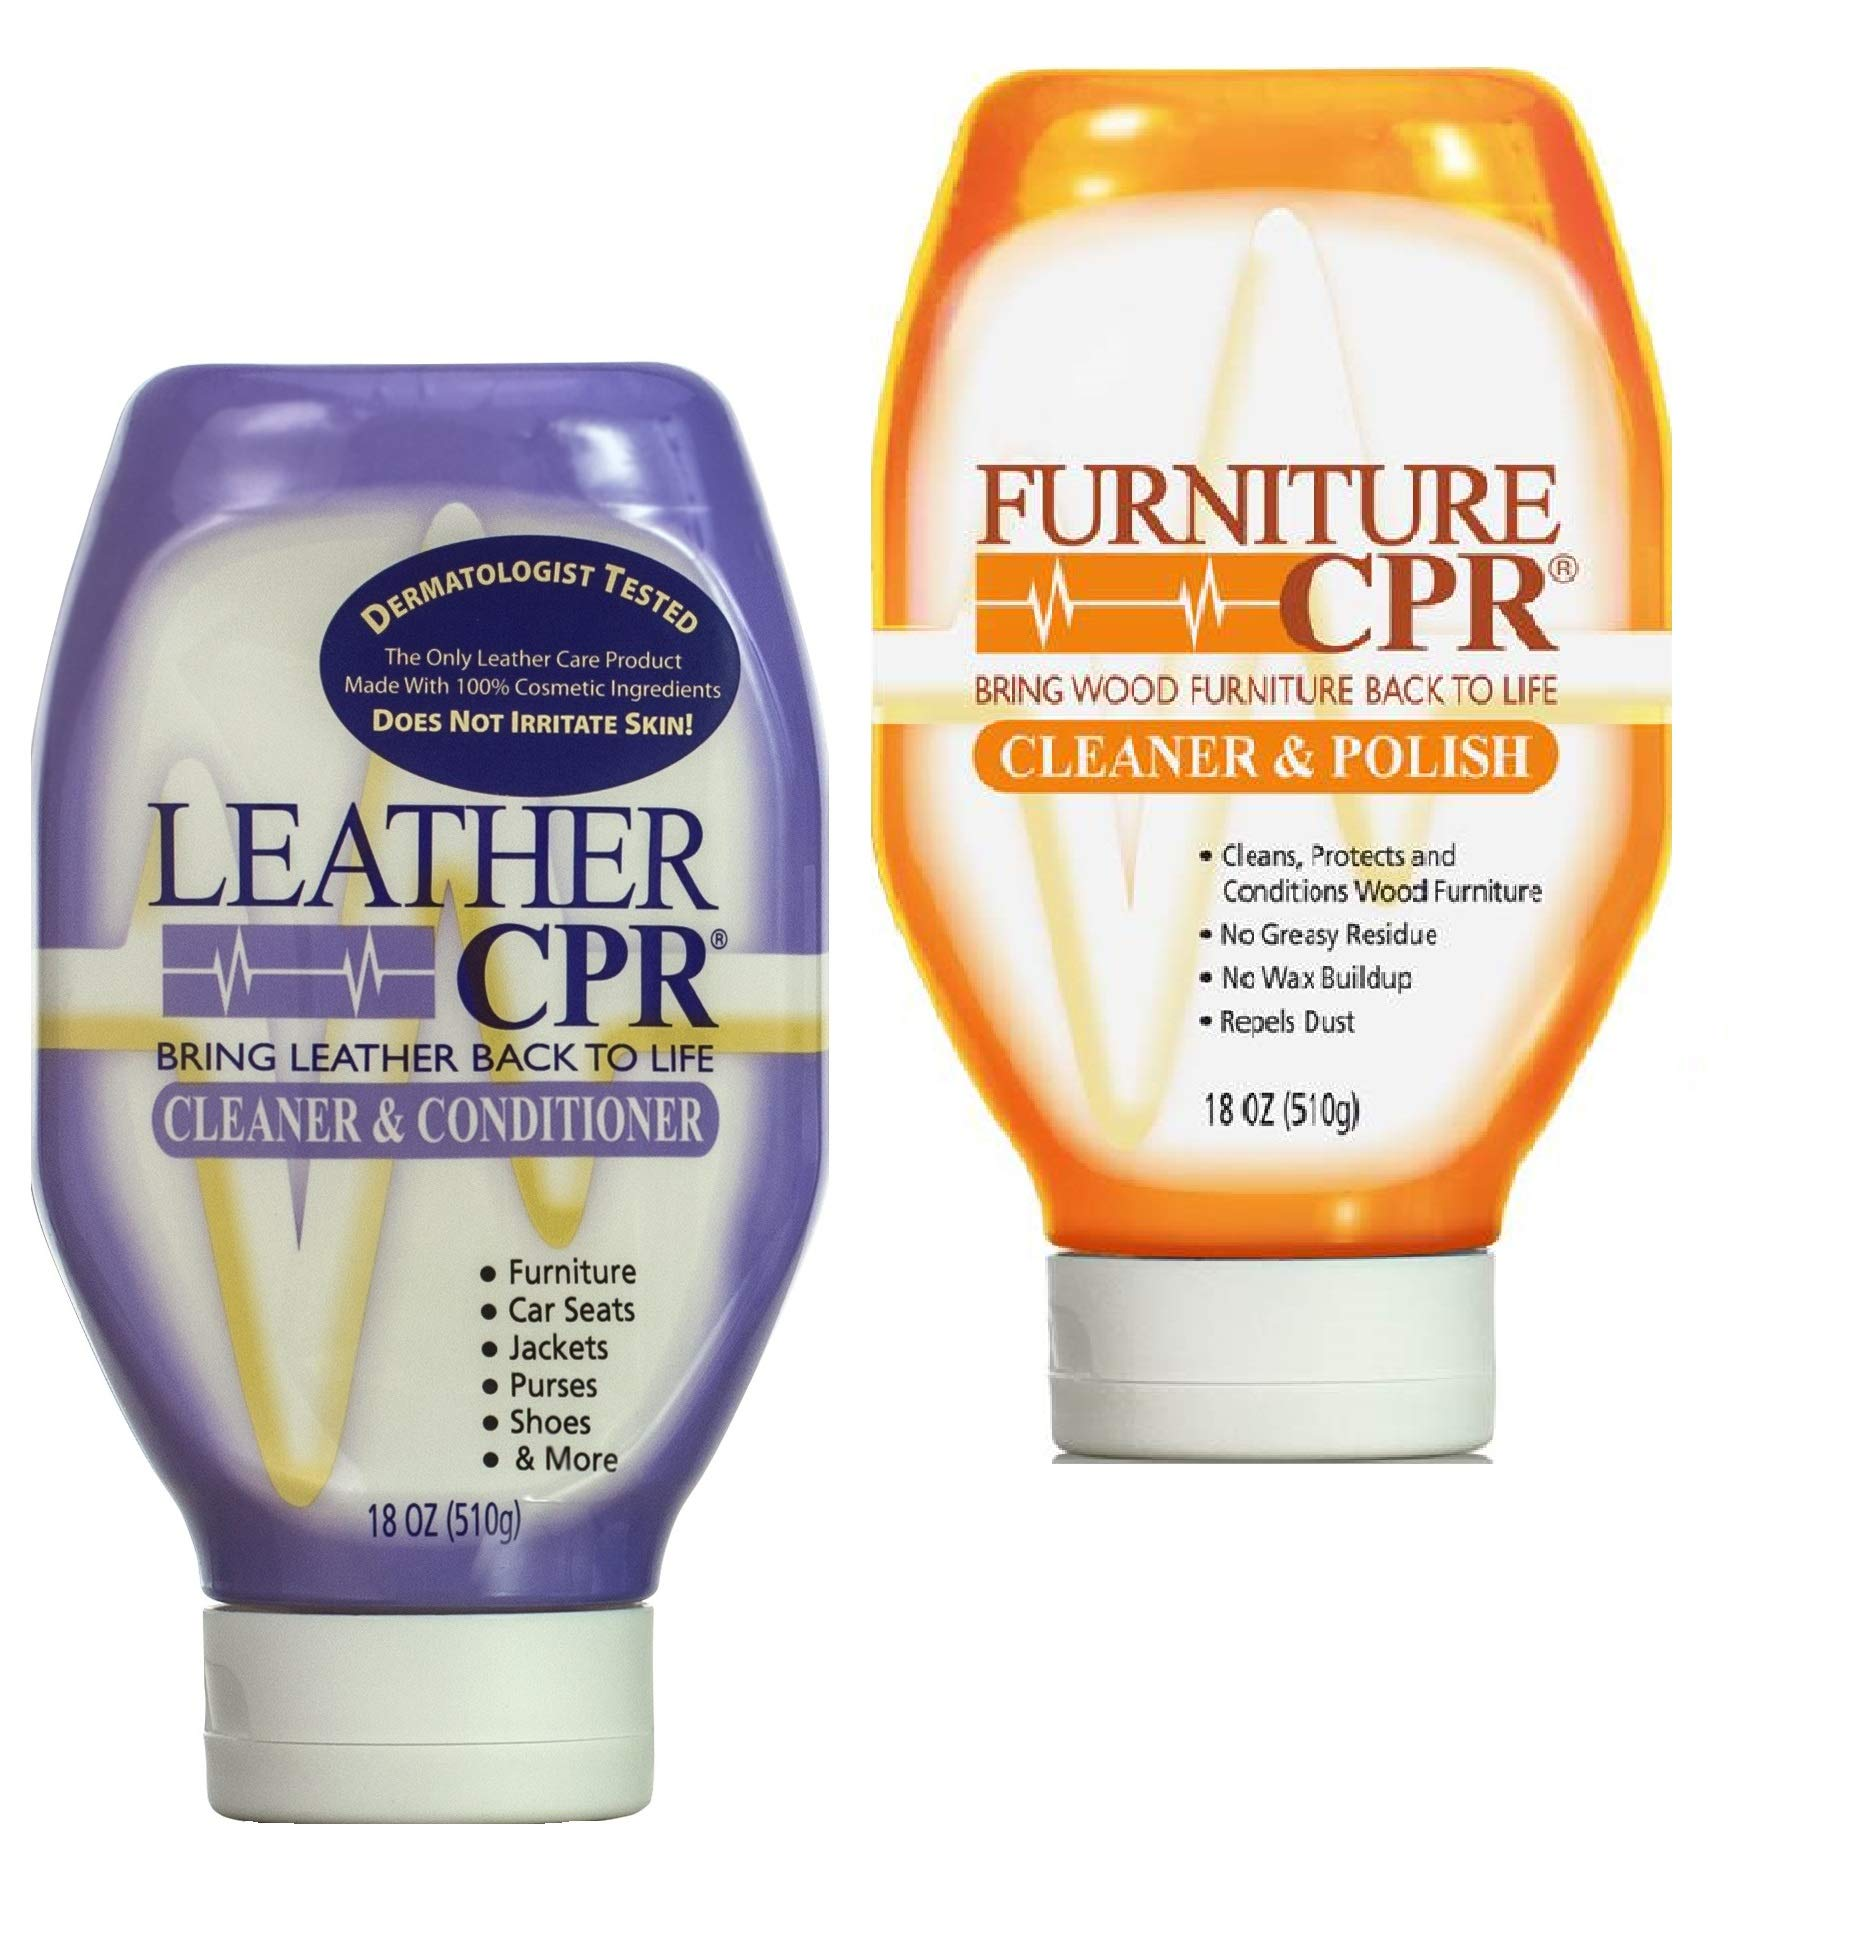 CPR Leather Furniture Cleaning Variety 2PK - Clean & Condition Leather, and Spruce Up Your Wood Furniture with This 2-in-1 Savings